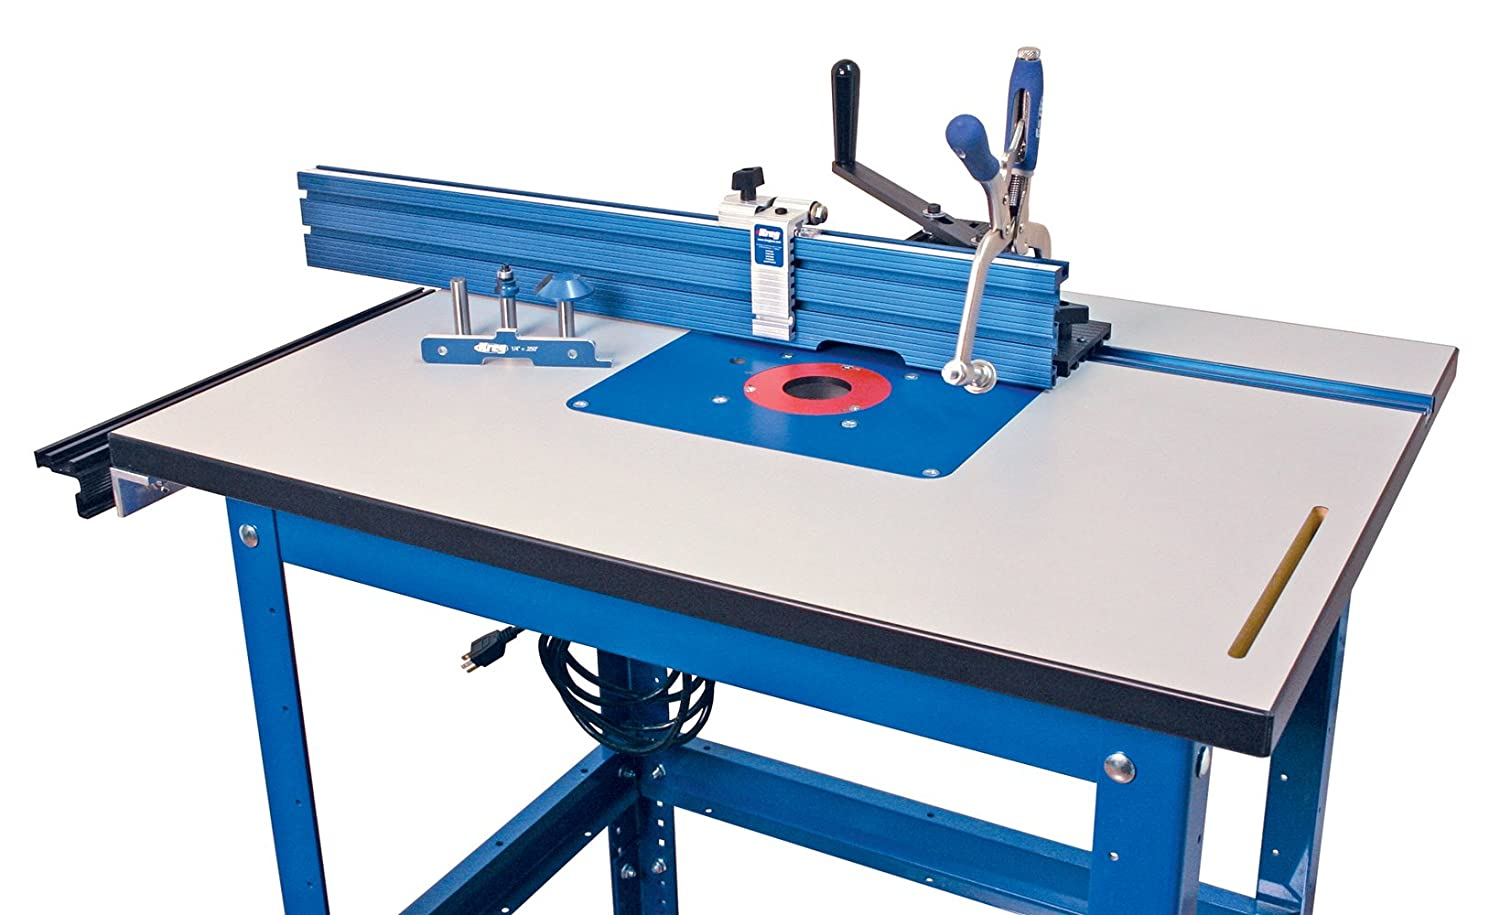 Kreg PRS1200 Precision Beaded Face-Frame System - Beading Router ...